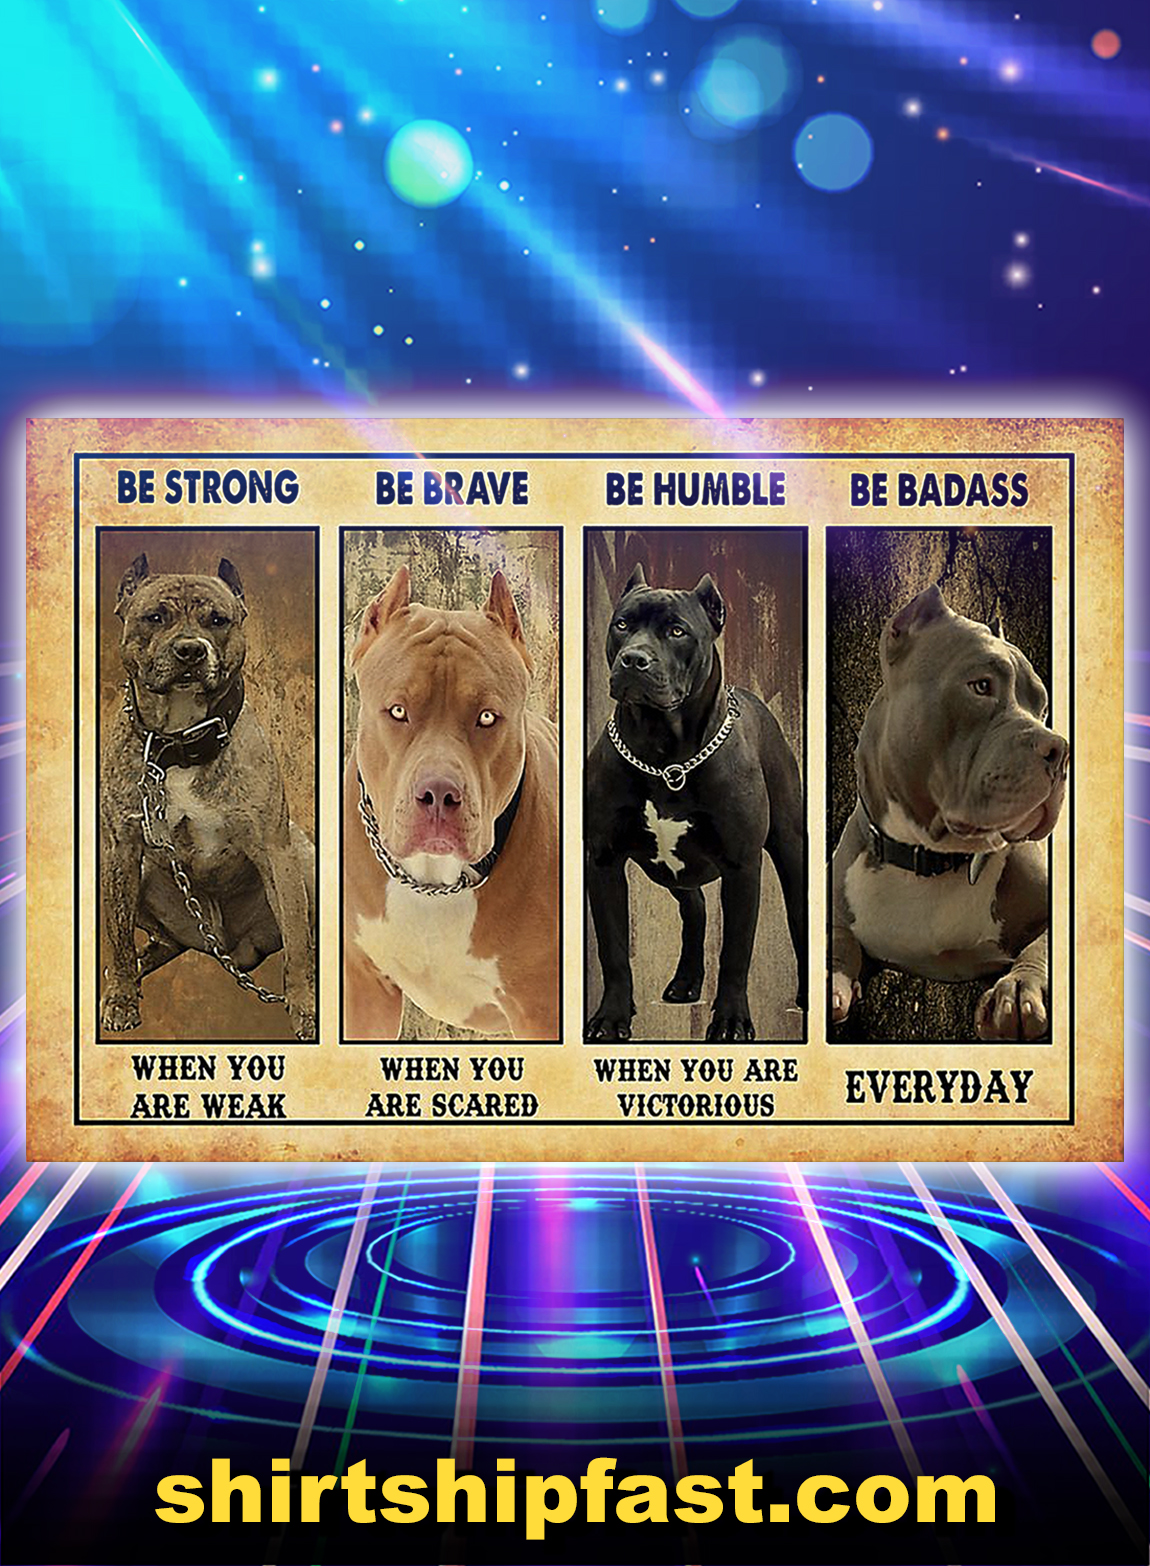 Pitbull be strong be brave be humble be badass poster - A3